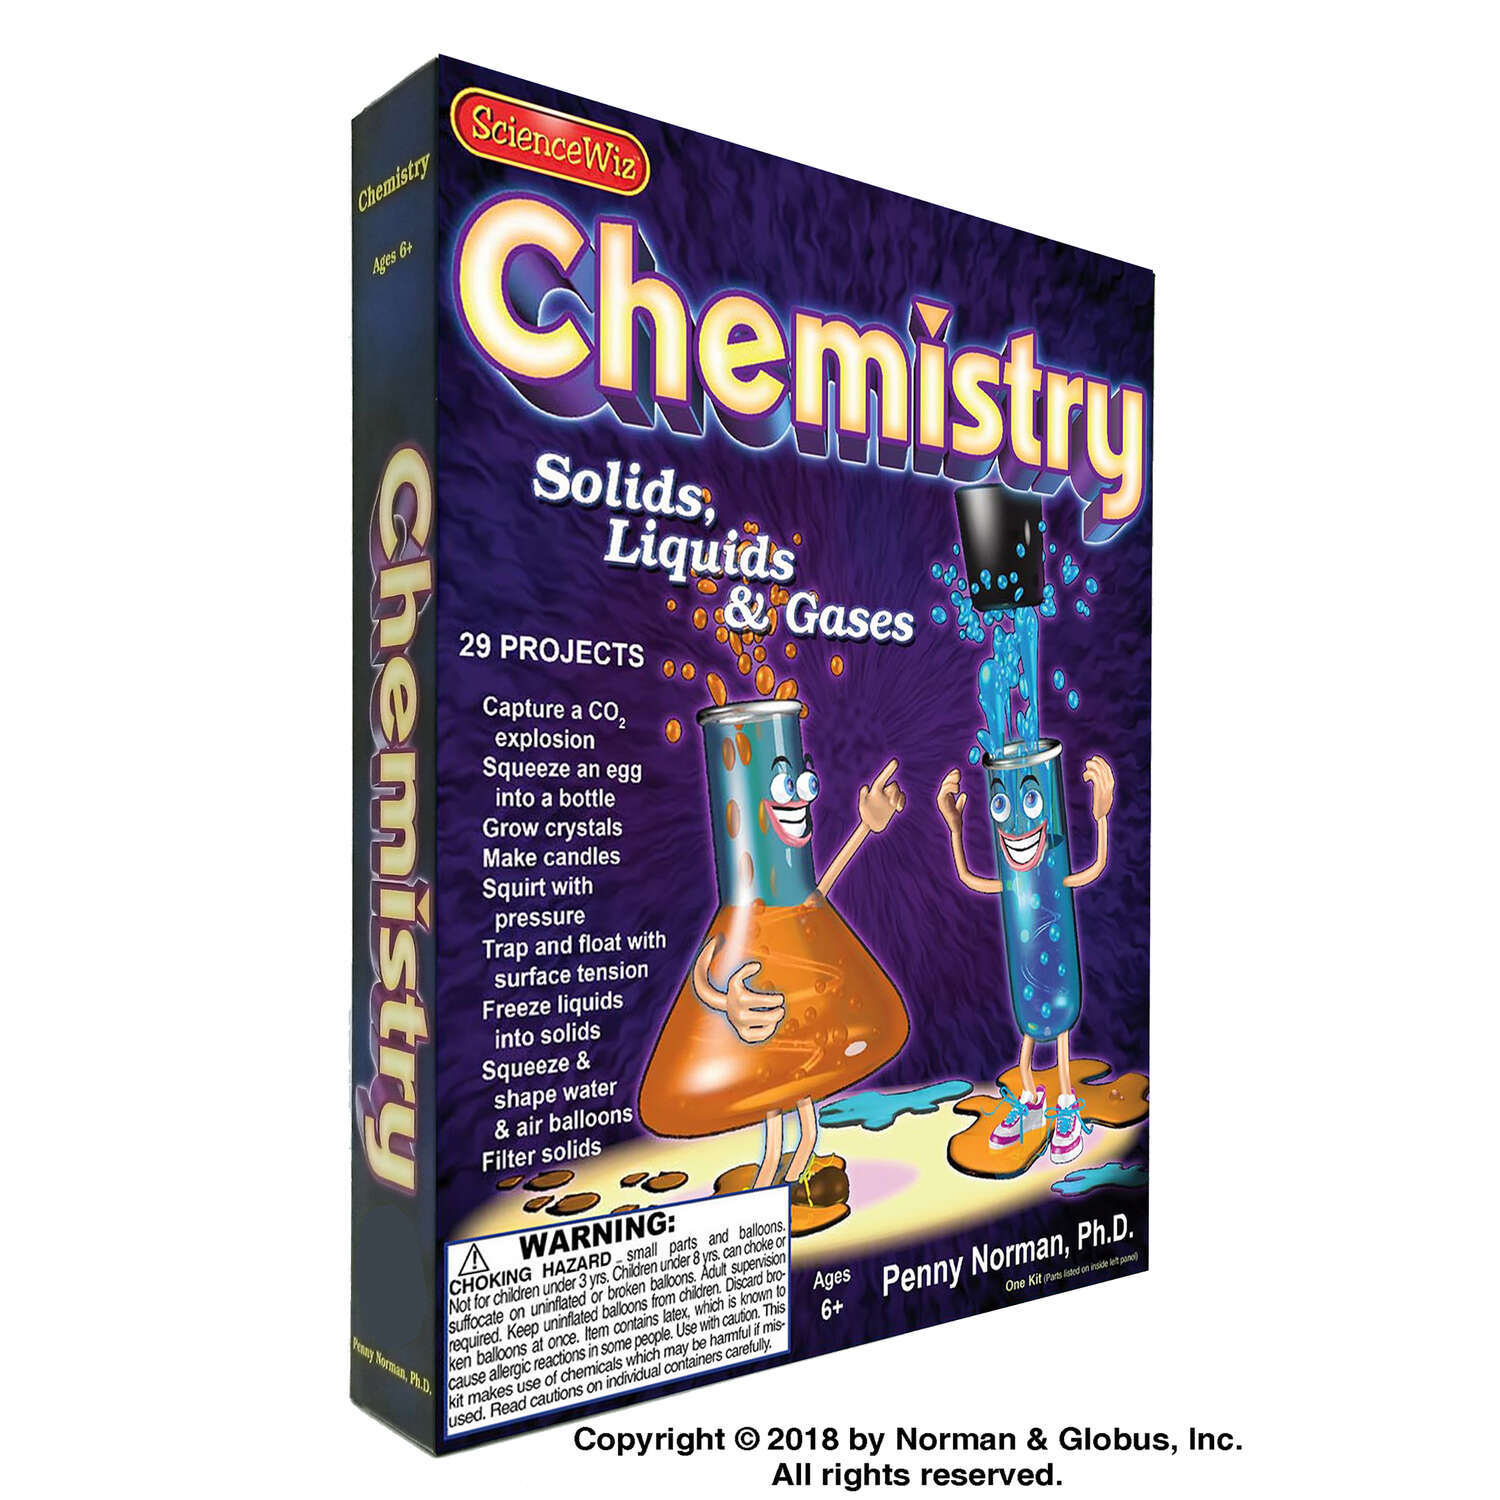 Science Wiz Chemistry Kit  Games/Science STEM Learning  Chemistry  1 pk